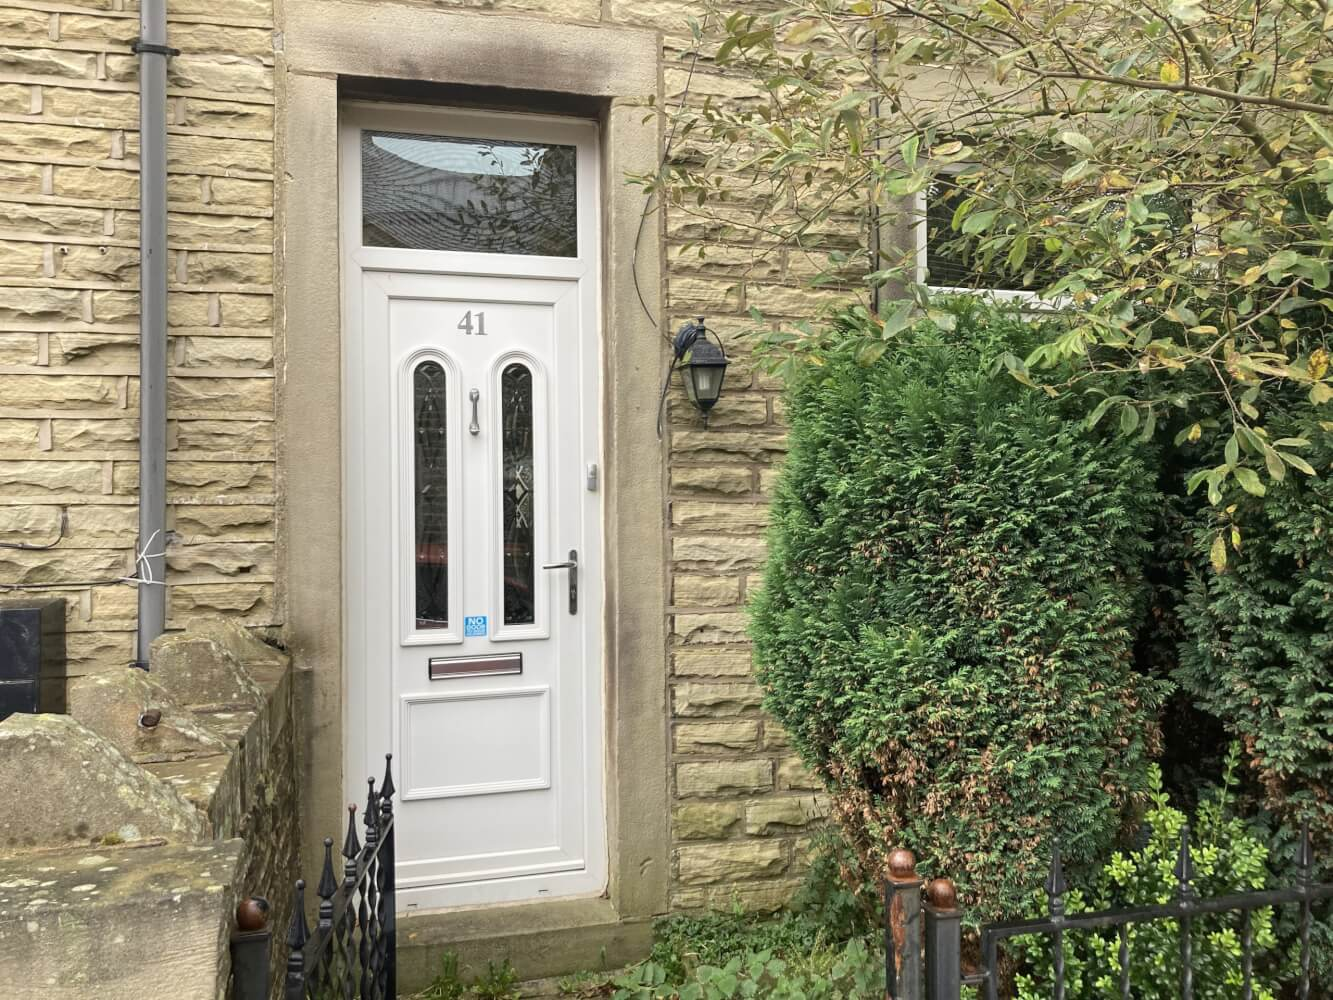 41 Clarence Street, Colne, BB8 0PP